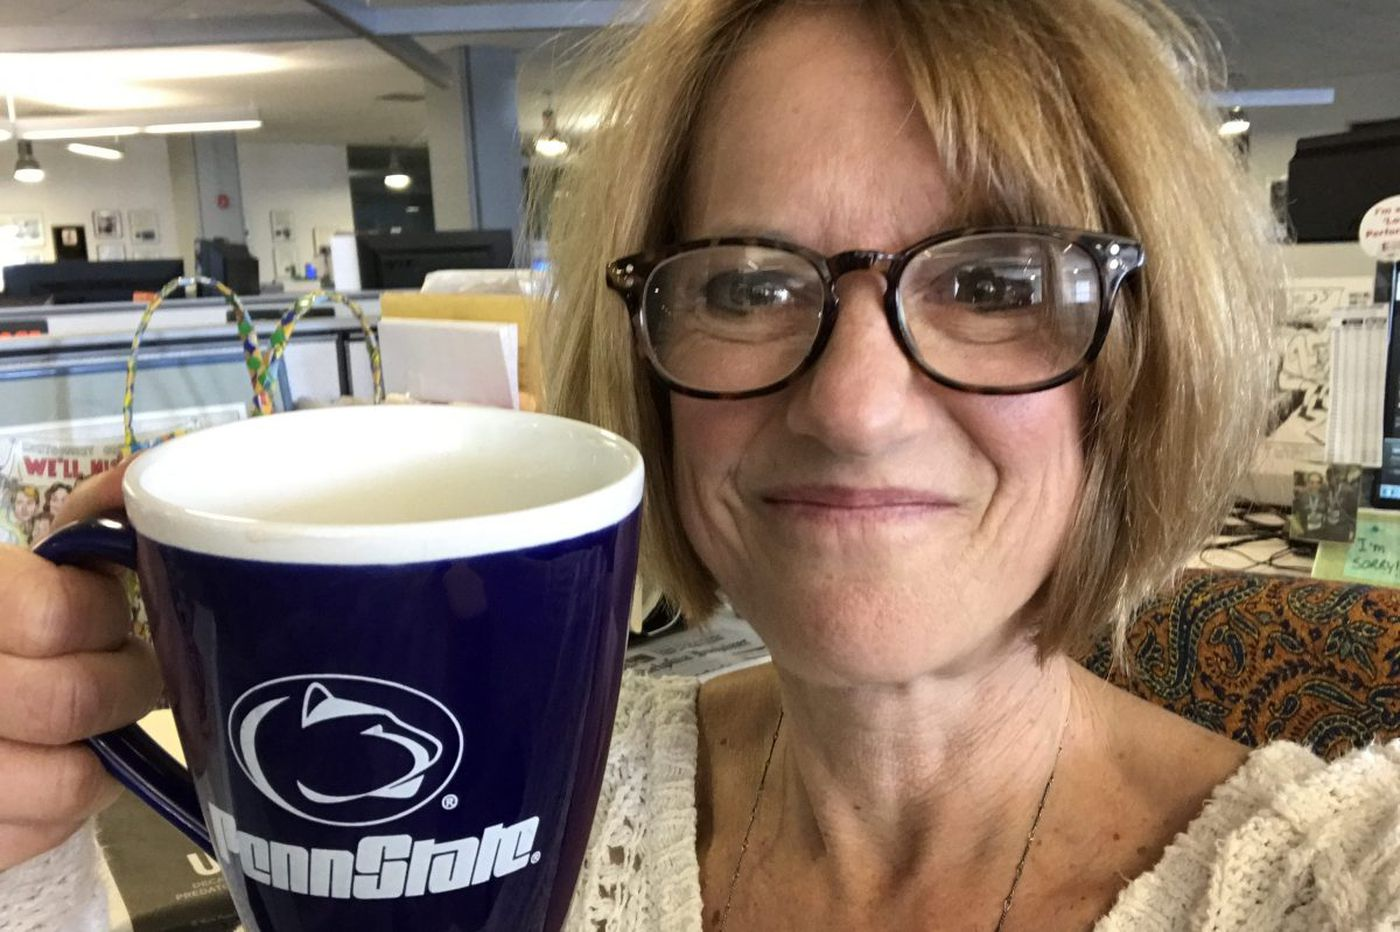 Why this Nittany Lion puts up with a Buckeye's abuse